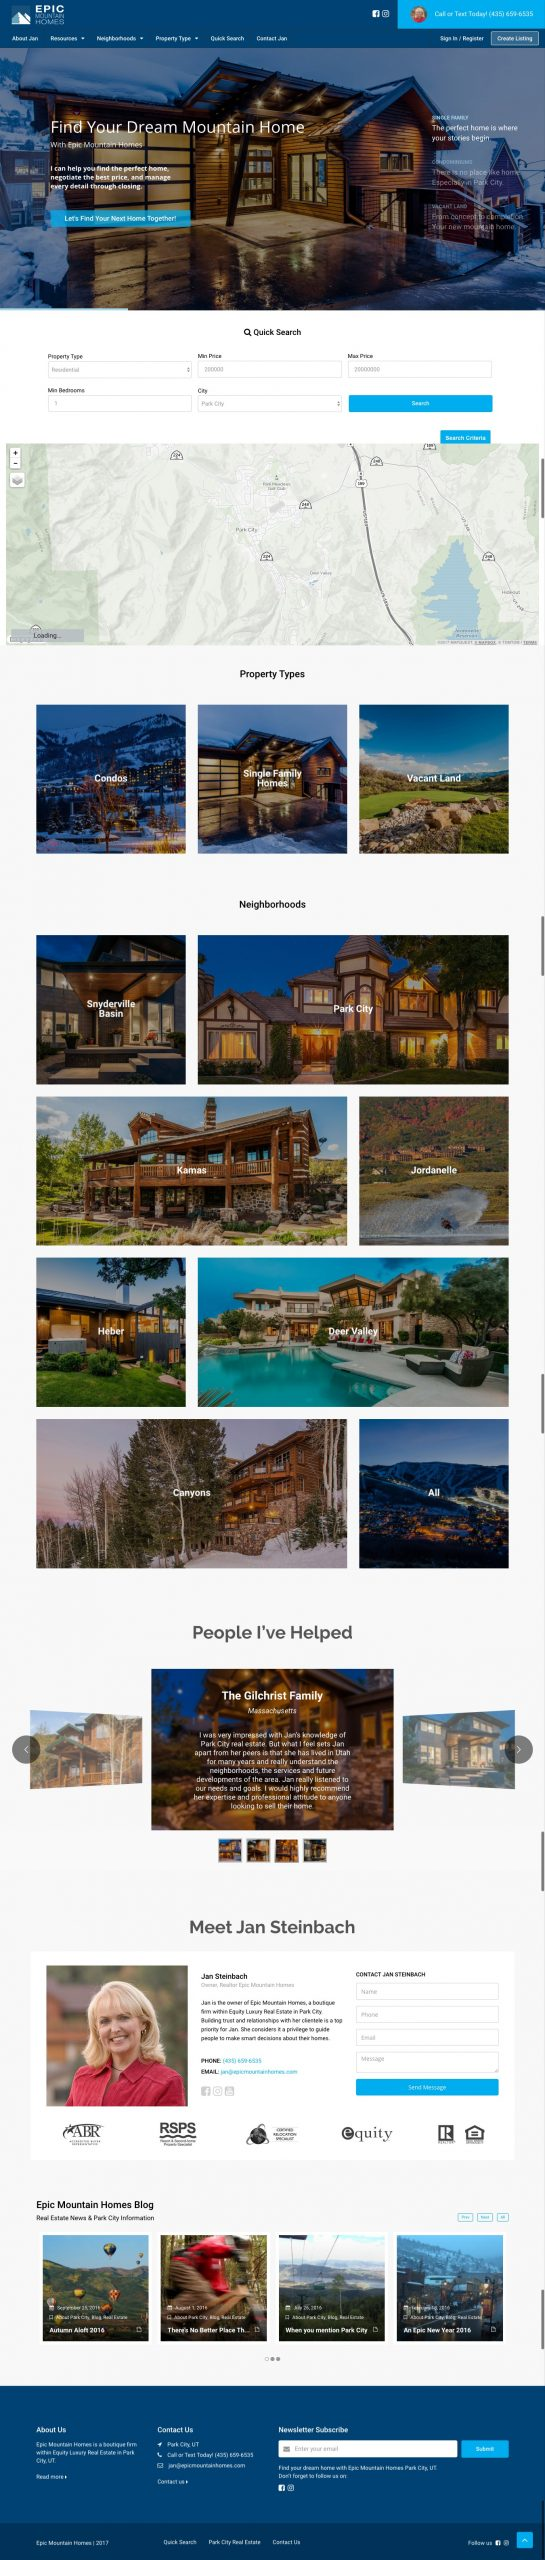 Epic-Mountain-Homes-Home-scaled.jpeg